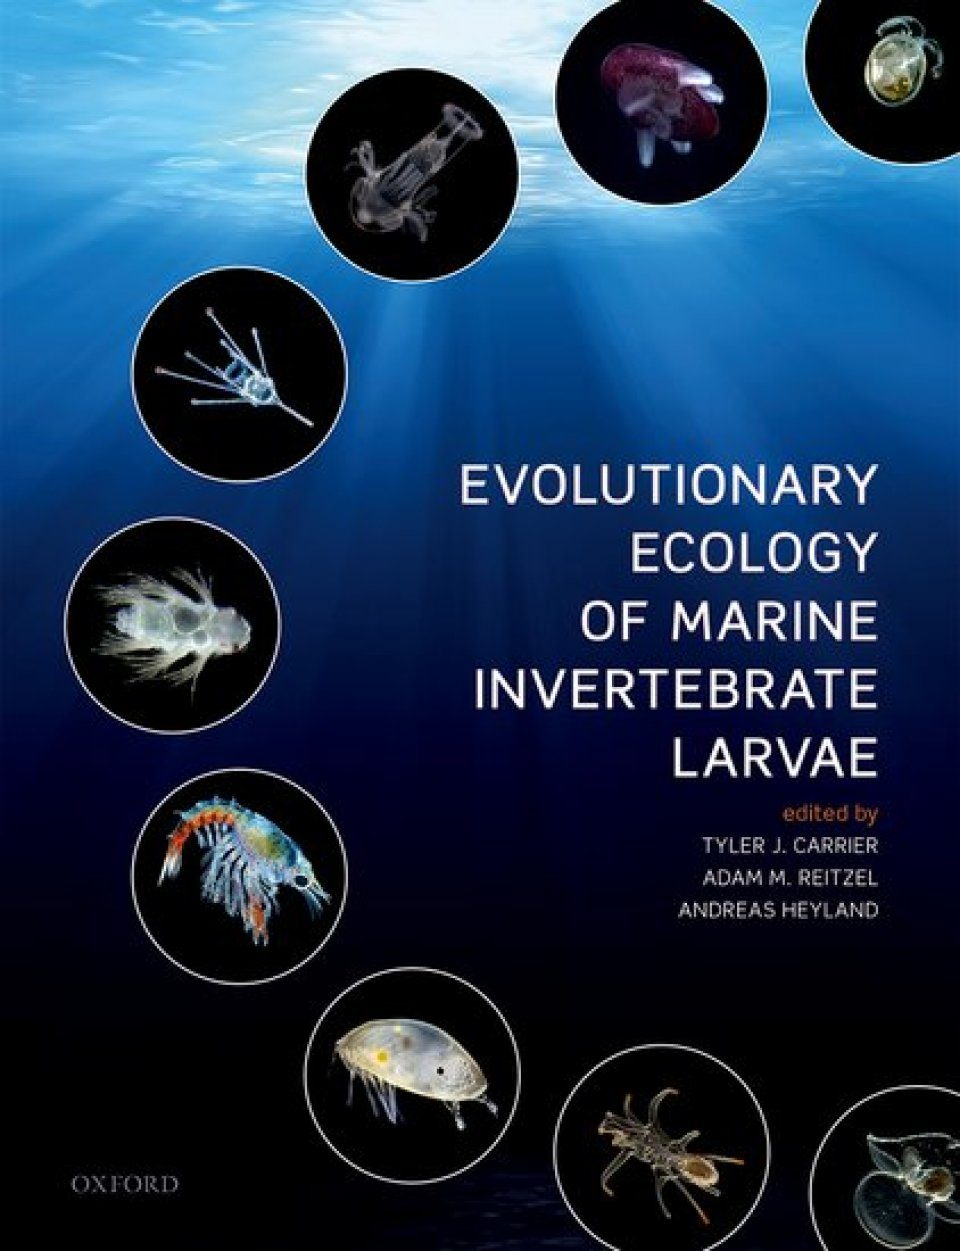 Evolutionary Ecology of Marine Invertebrate Larvae